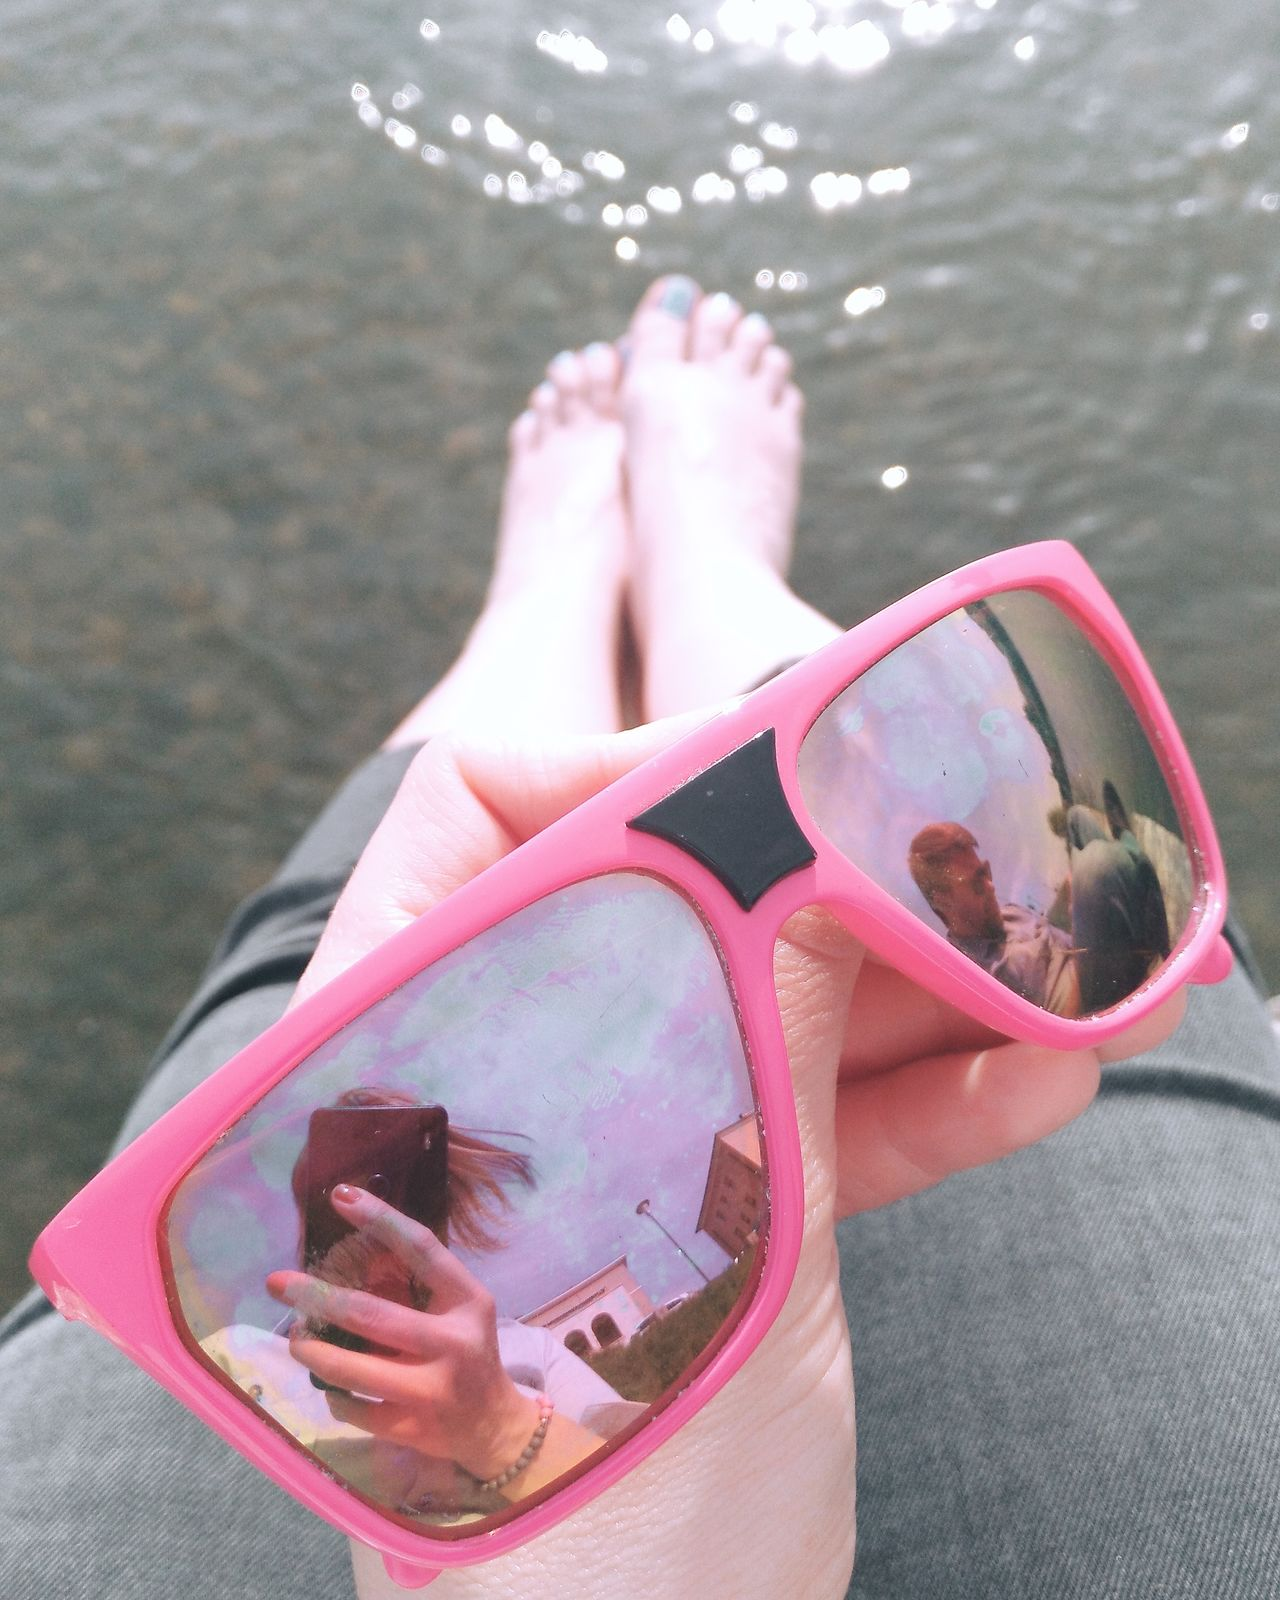 Millennial Pink SelfEye Pink Feet Clouds And Sky Enjoying The Sun Mirror Sunglasses Sunglasses Reflection Girl Close-up People Women Around The World Moments Pink Color Water From Where I Stand Enjoying Life Sunglasses Selfie Couple Water Reflections Lens Flare Reflection Legs Selfie ✌ Long Goodbye